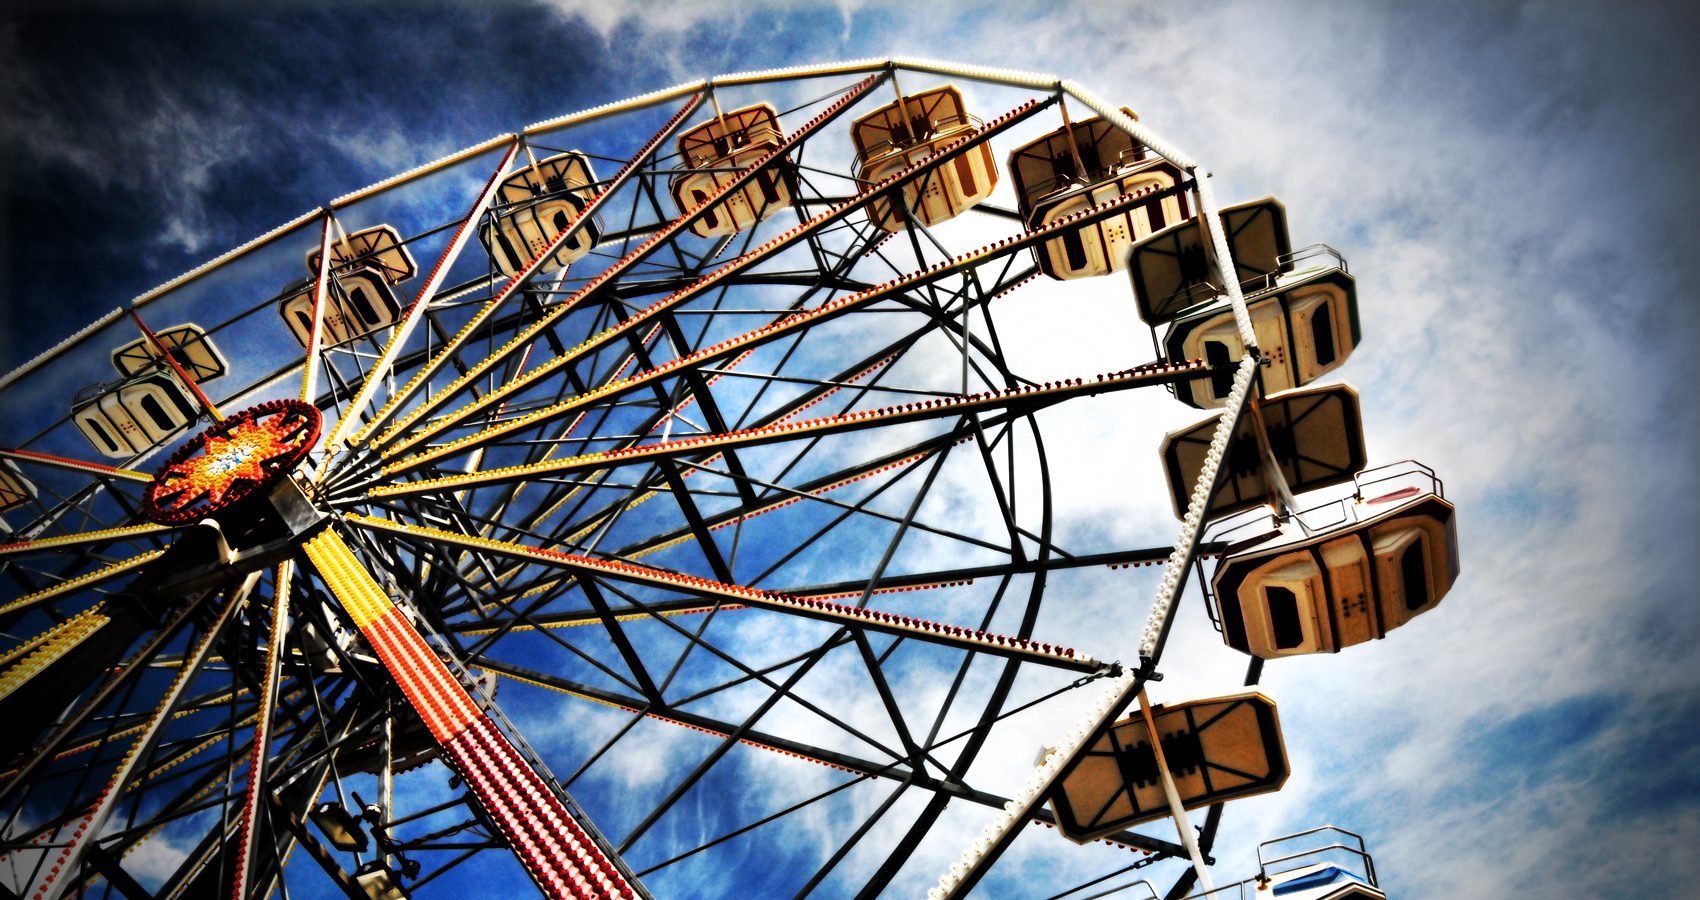 Ferris Wheel by Shloka Shankar at Spillwords.com